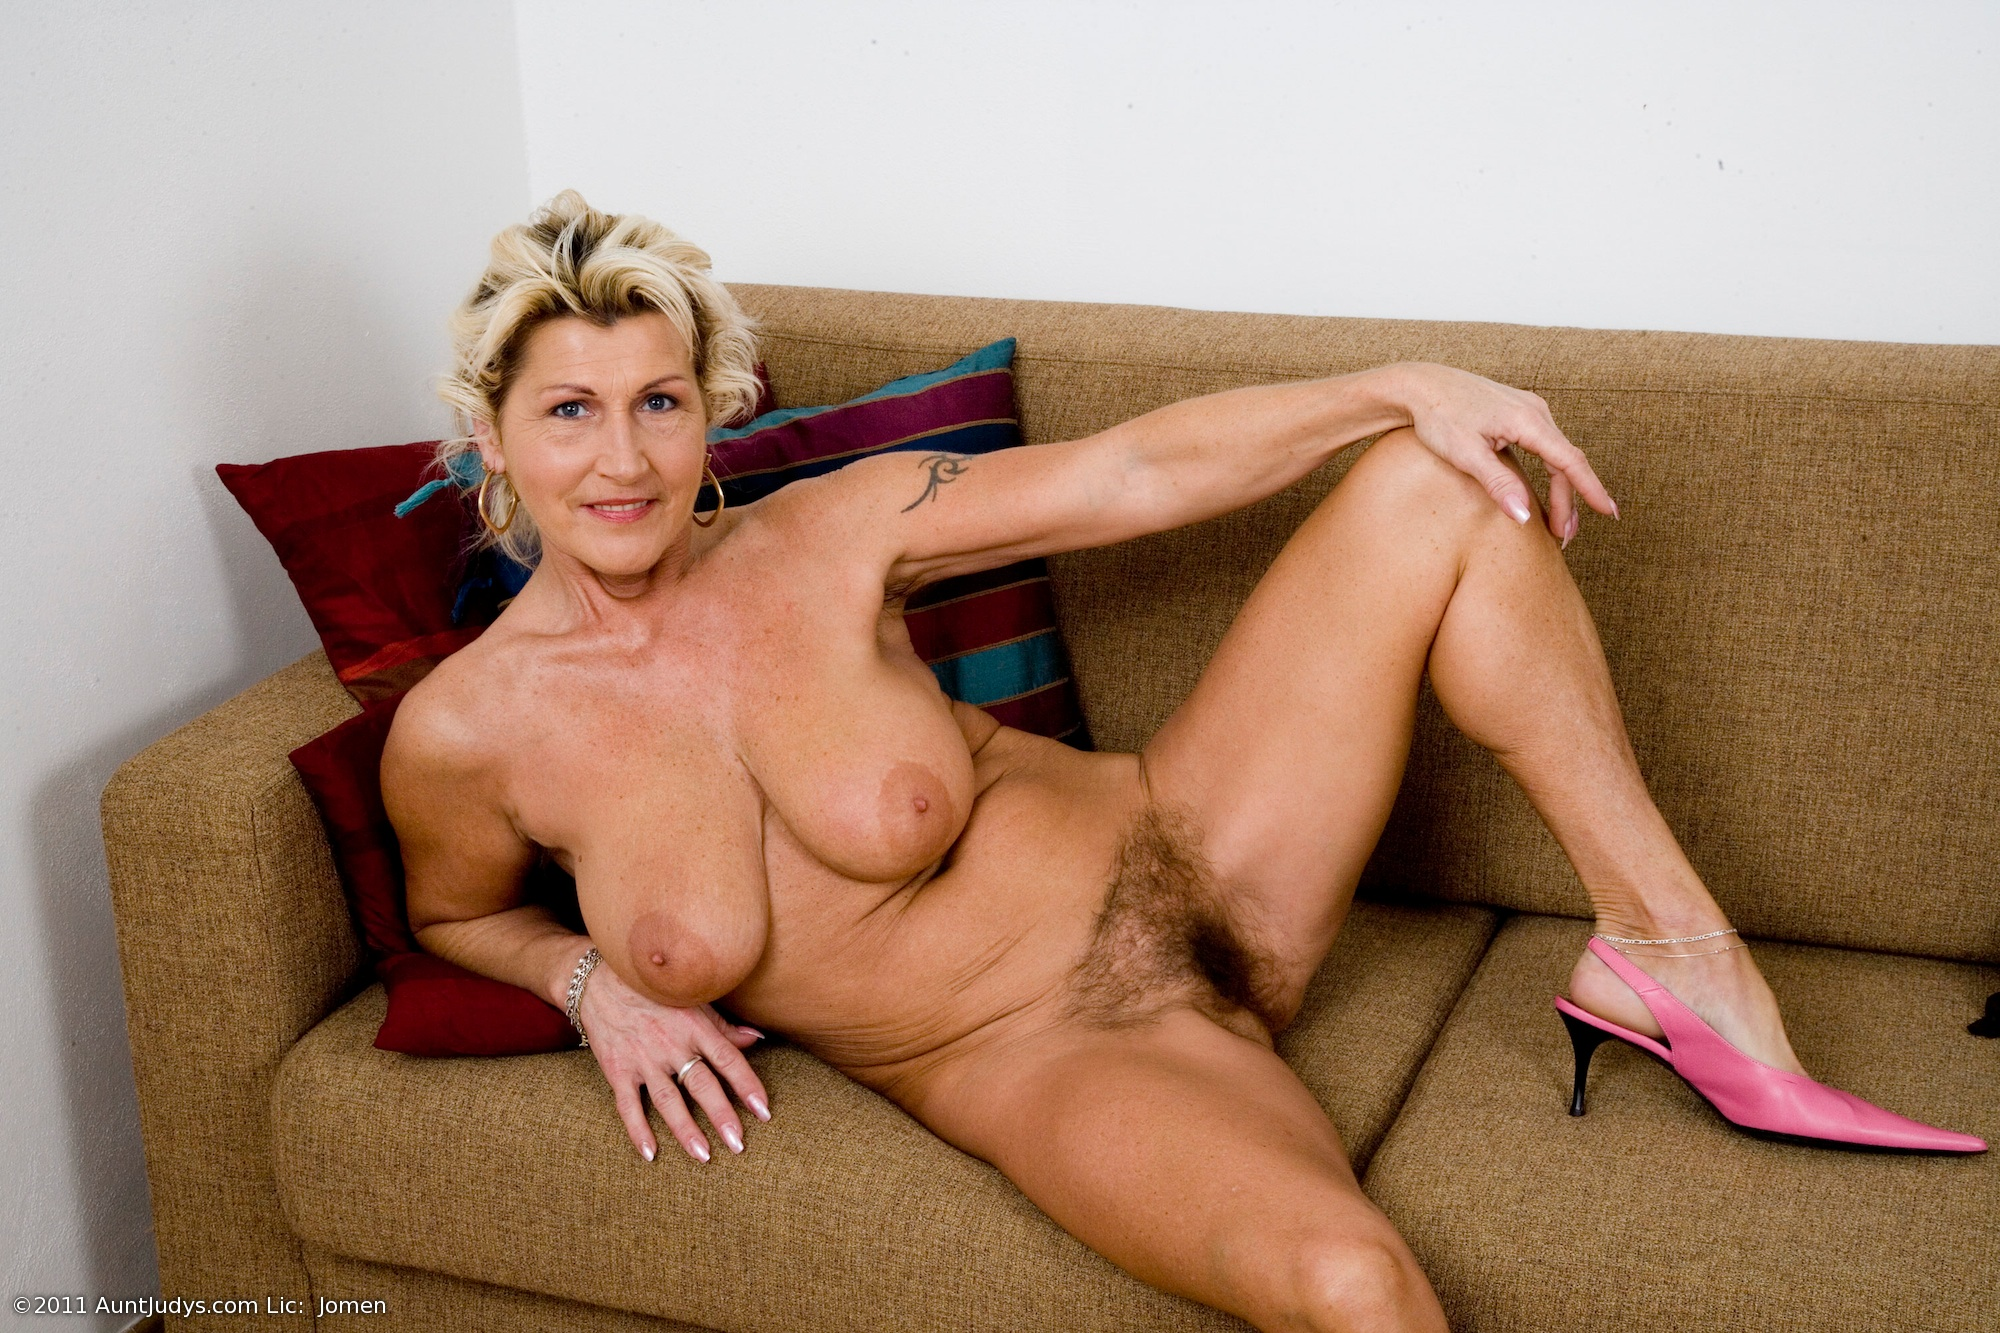 For Hot sexy older women porn here against